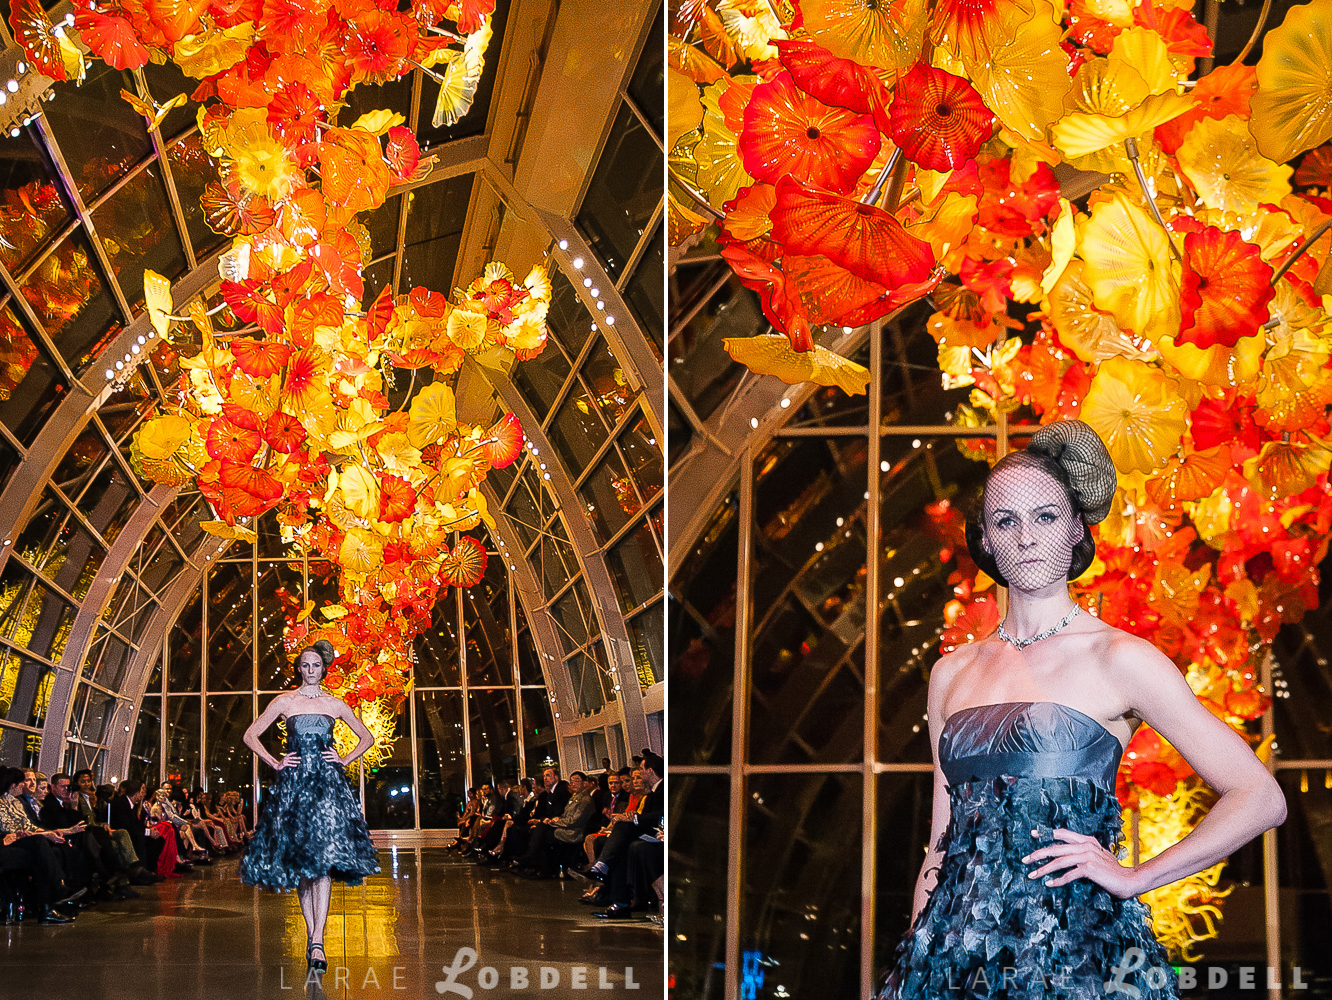 I'm thrilled that I am the very proud owner of this one-of-a-kind gown, designed by Julie Danforth and gowns highlighted on the runway at Metropolitan Fashion Week 2013 at Chihuly Garden and Glass.